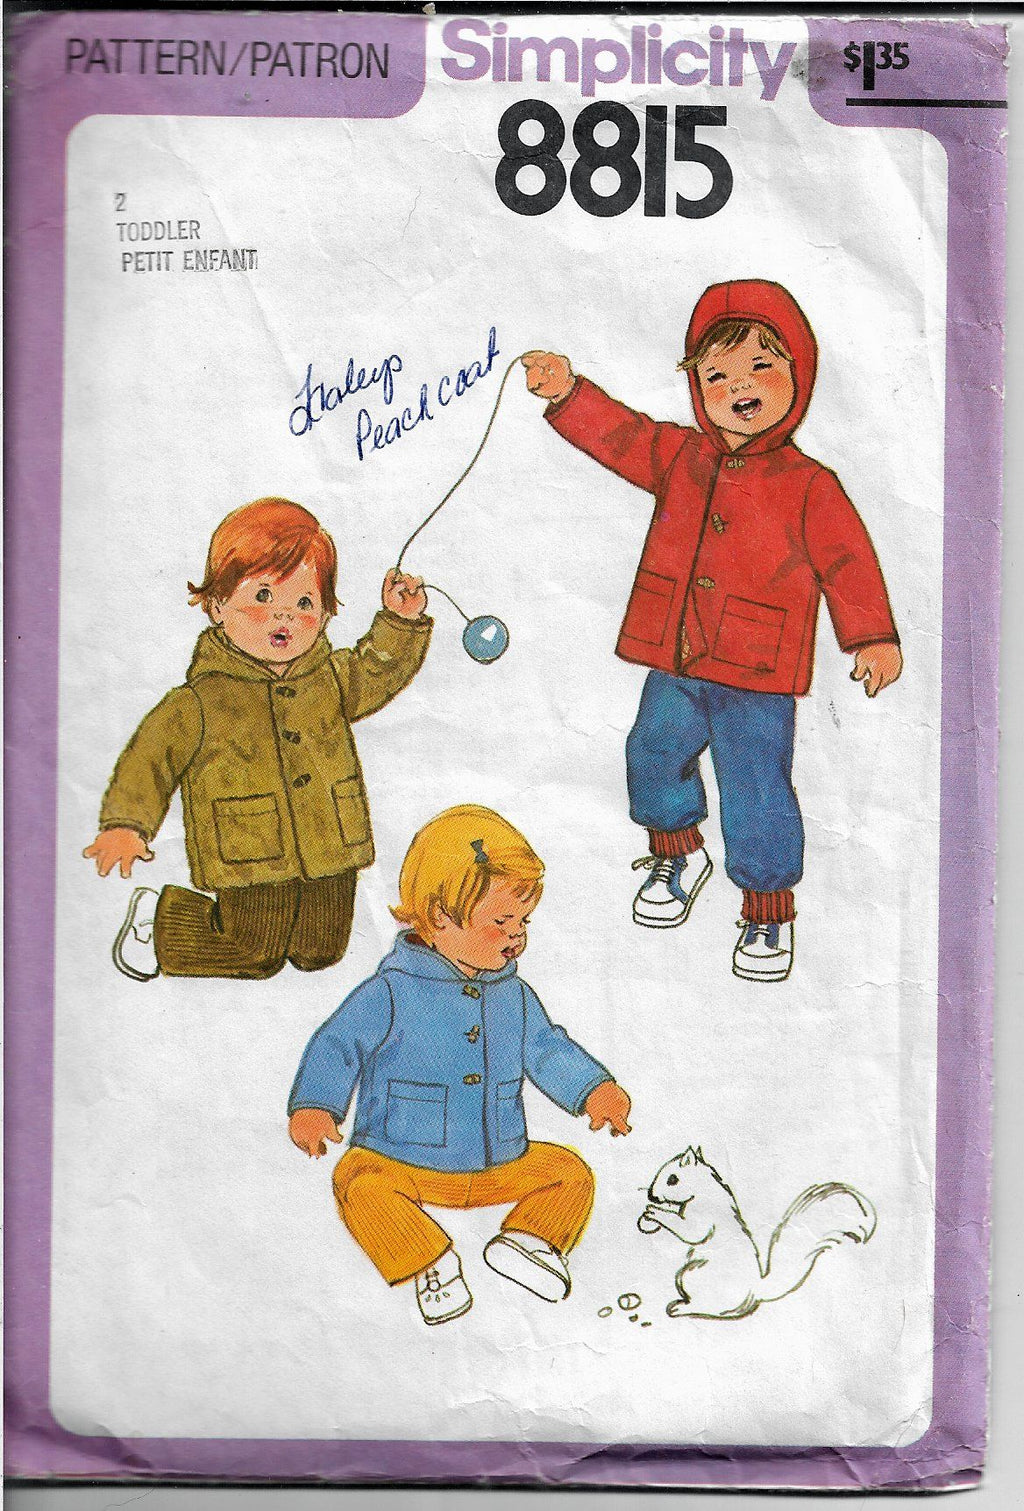 Simplicity 8815 Toddler Coat Jacket Vintage Sewing Pattern 1950's - VintageStitching - Vintage Sewing Patterns